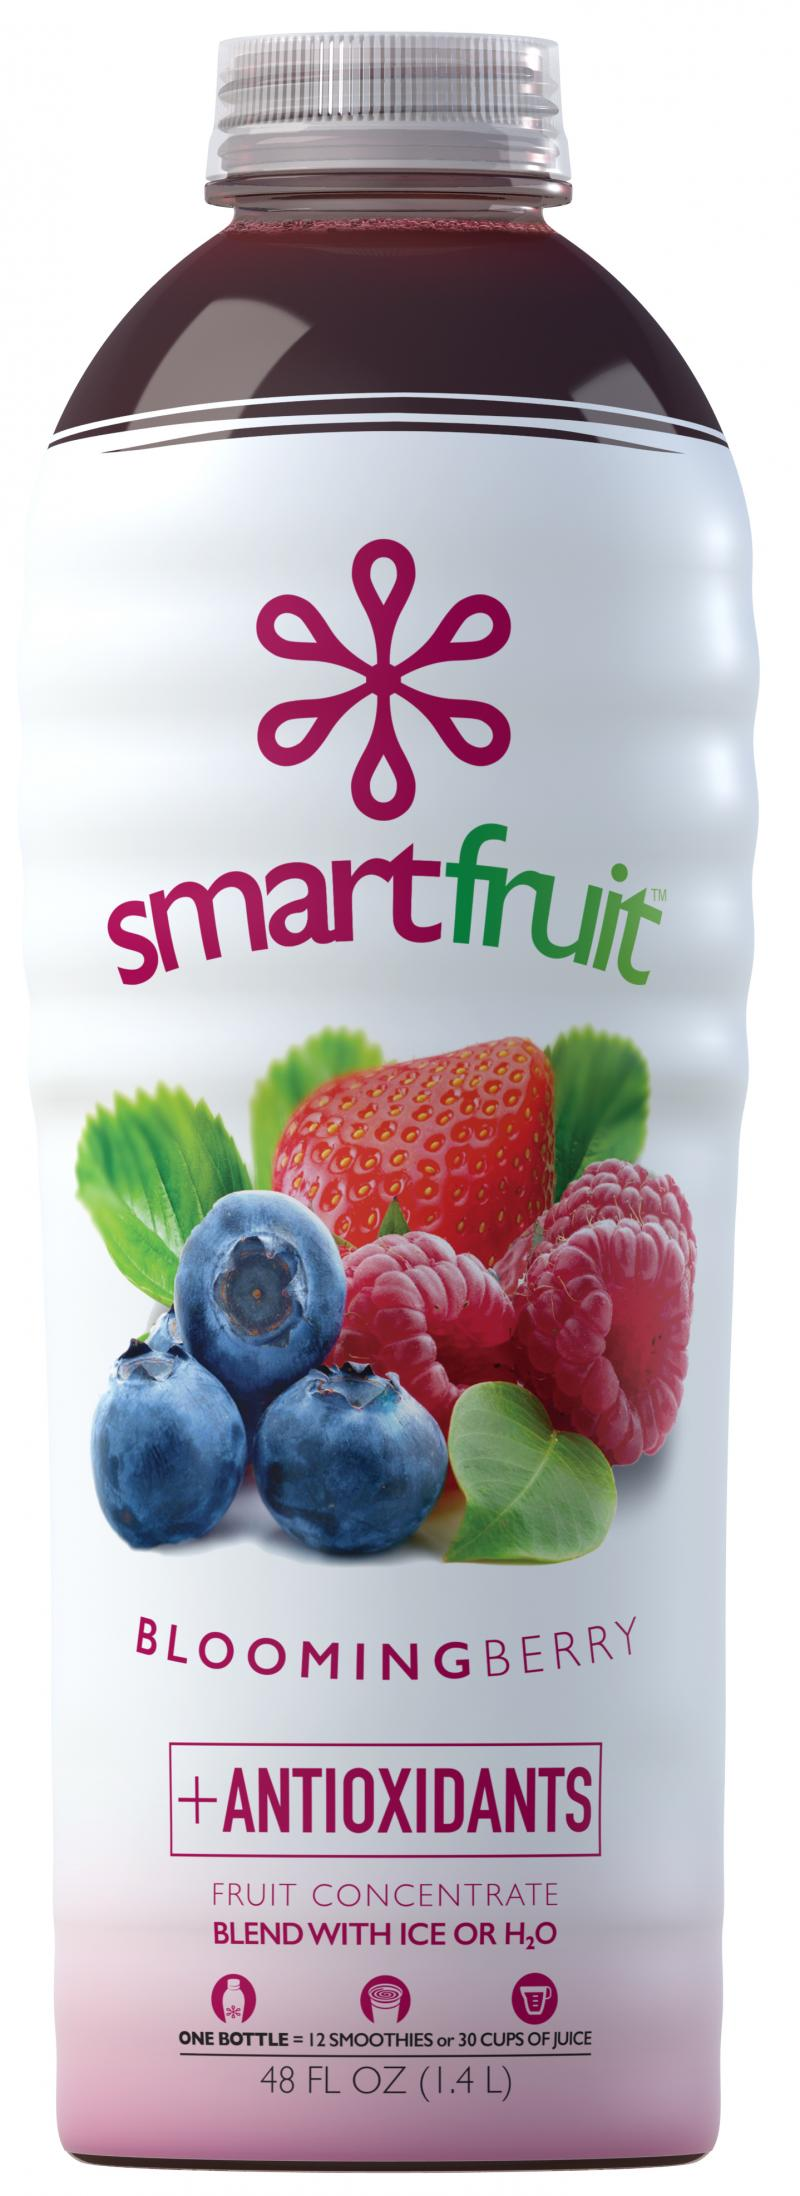 Blooming Berry + Antioxidants Fruit Concentrate